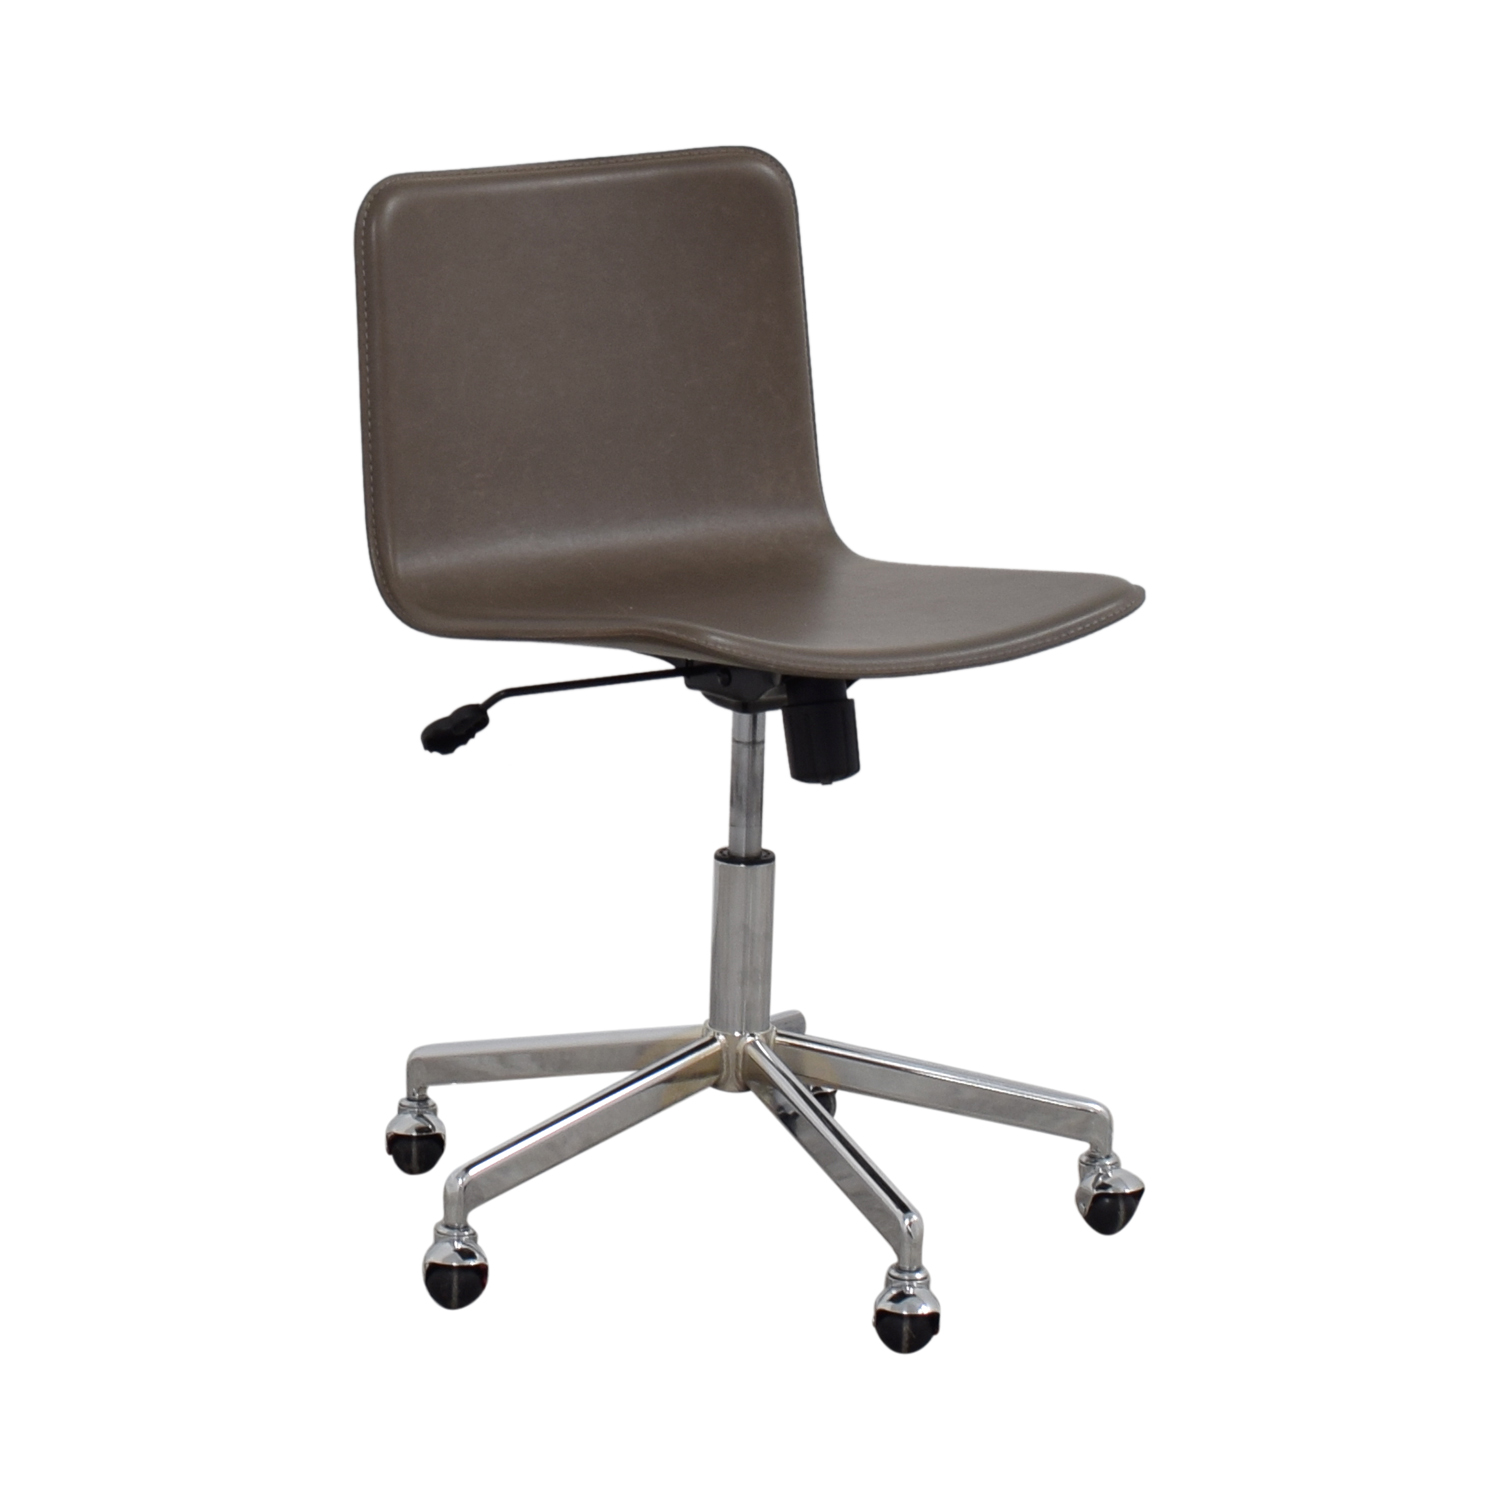 58 OFF CB2 CB2 Grey Leather Adjustable Office Chair on Castors